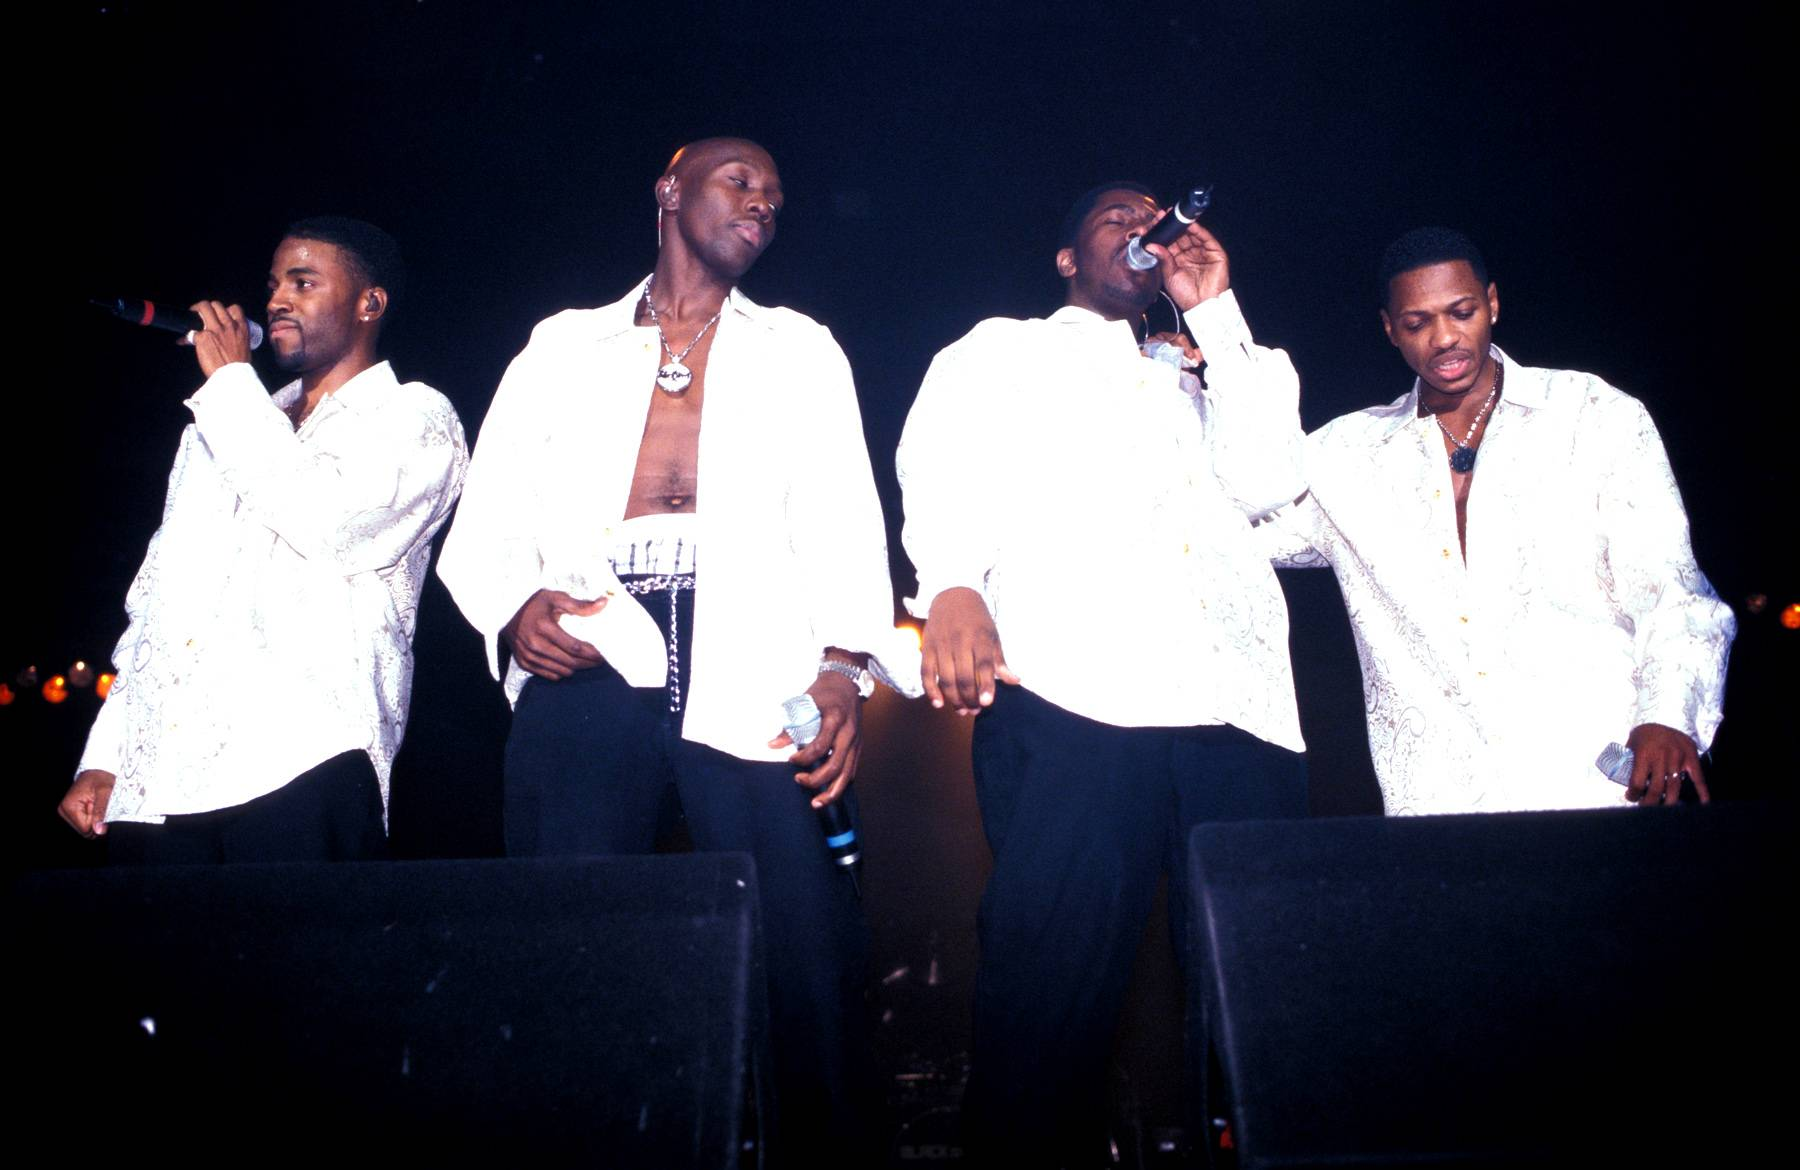 """Blackstreet - Blackstreet and Hezekiah Walker are a natural fit because the two worked together on the quartet's song """"Finally."""" The song fused Blackstreet's signature swag and harmonies with Hezekiah Walker's gospel sensibilities for the perfect tune.  (Photo: Mick Hutson/Redferns)"""